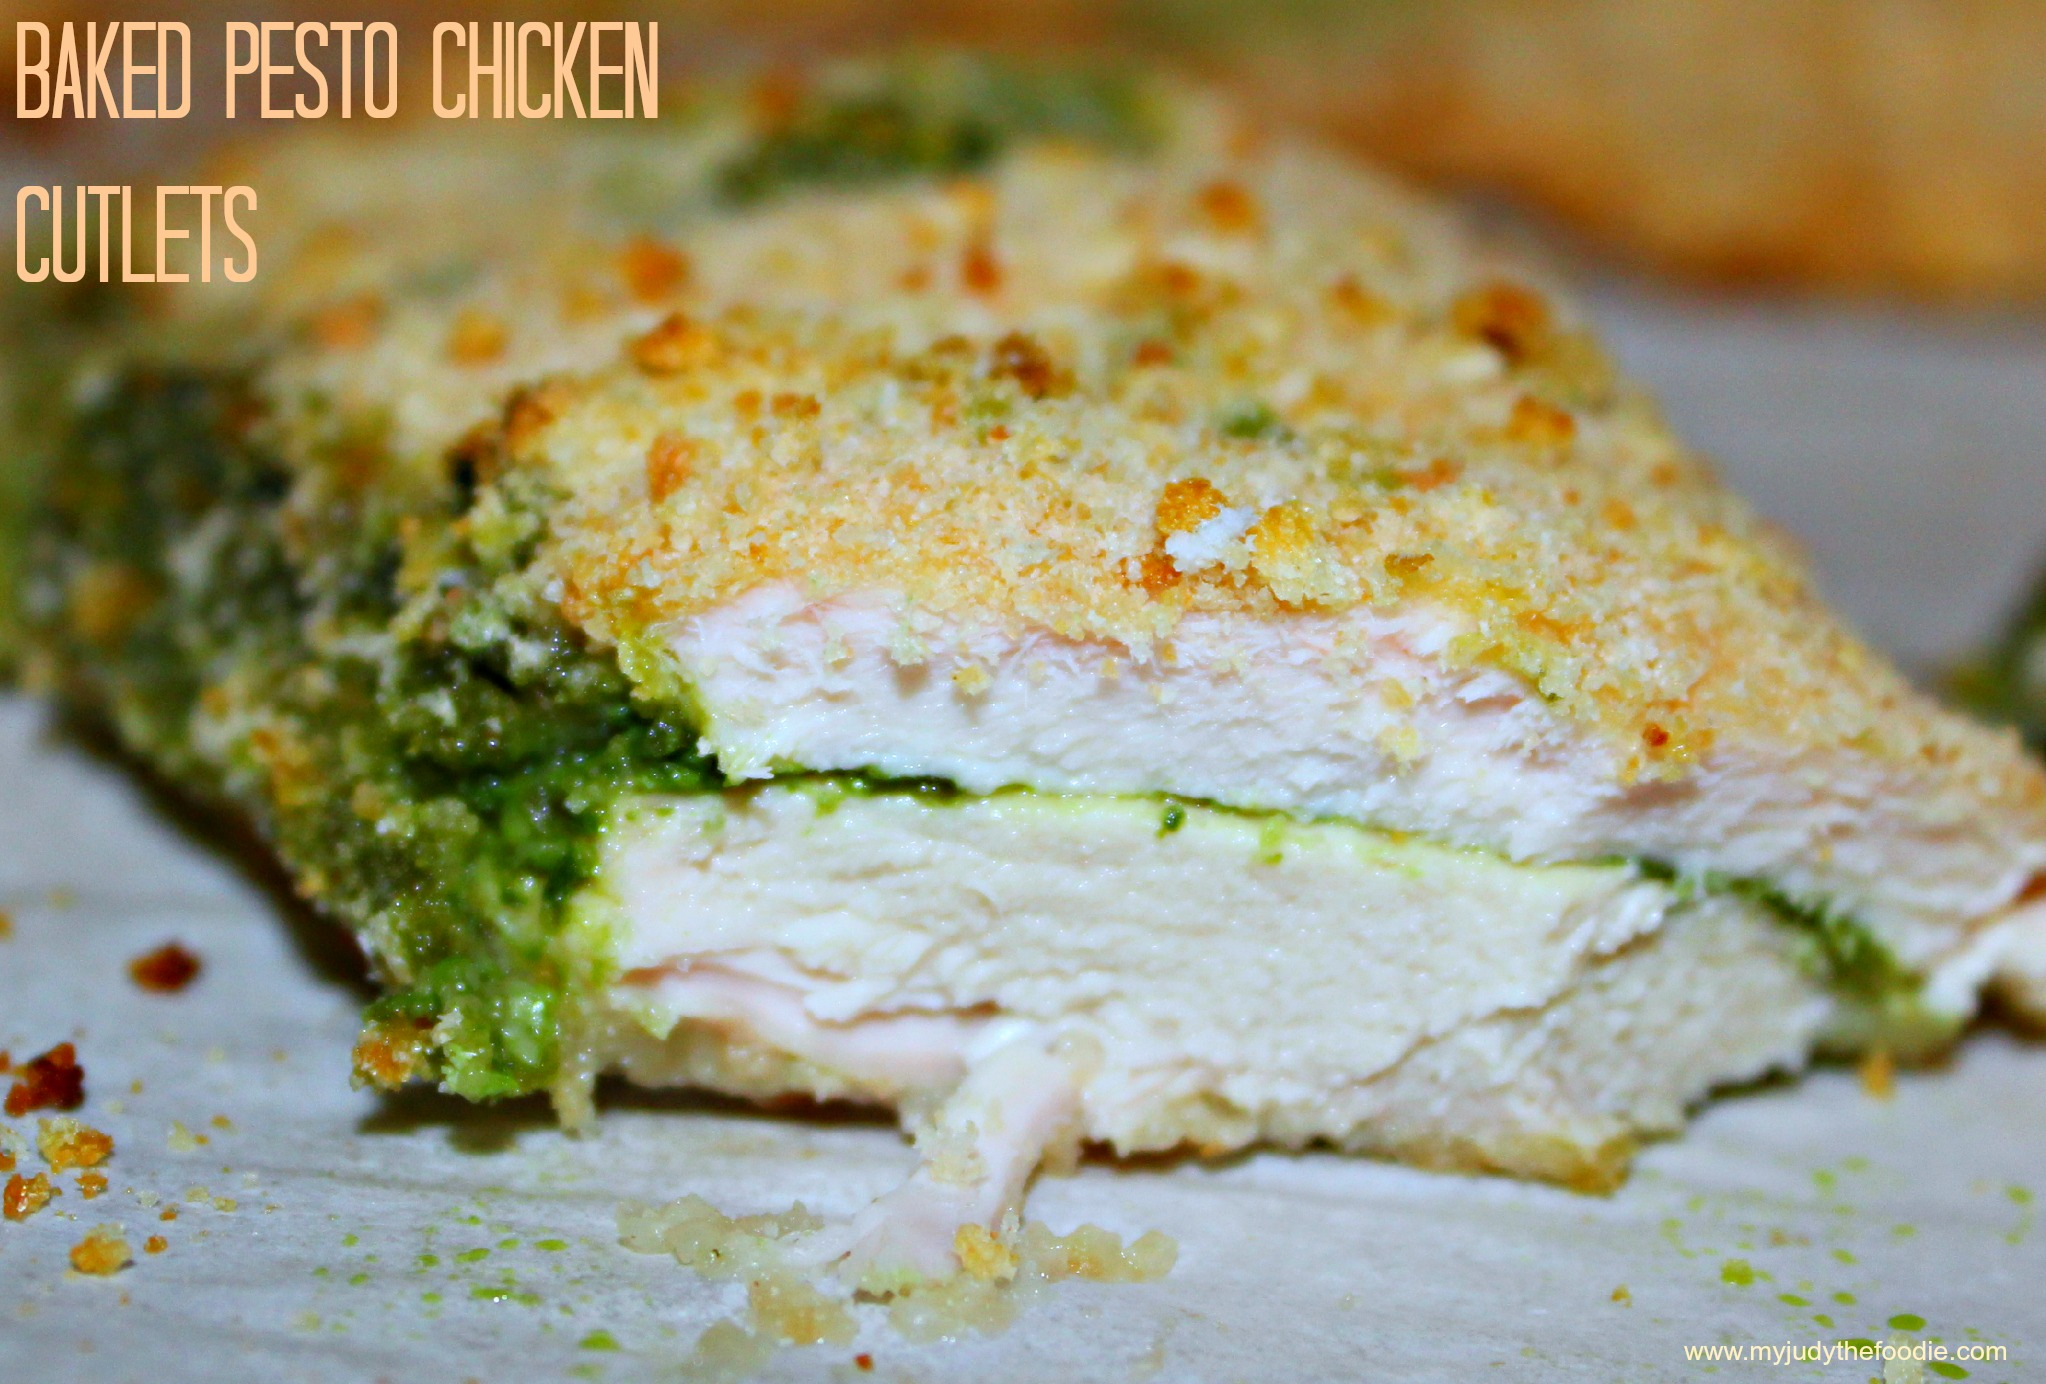 Baked Pesto Chicken Cutlets